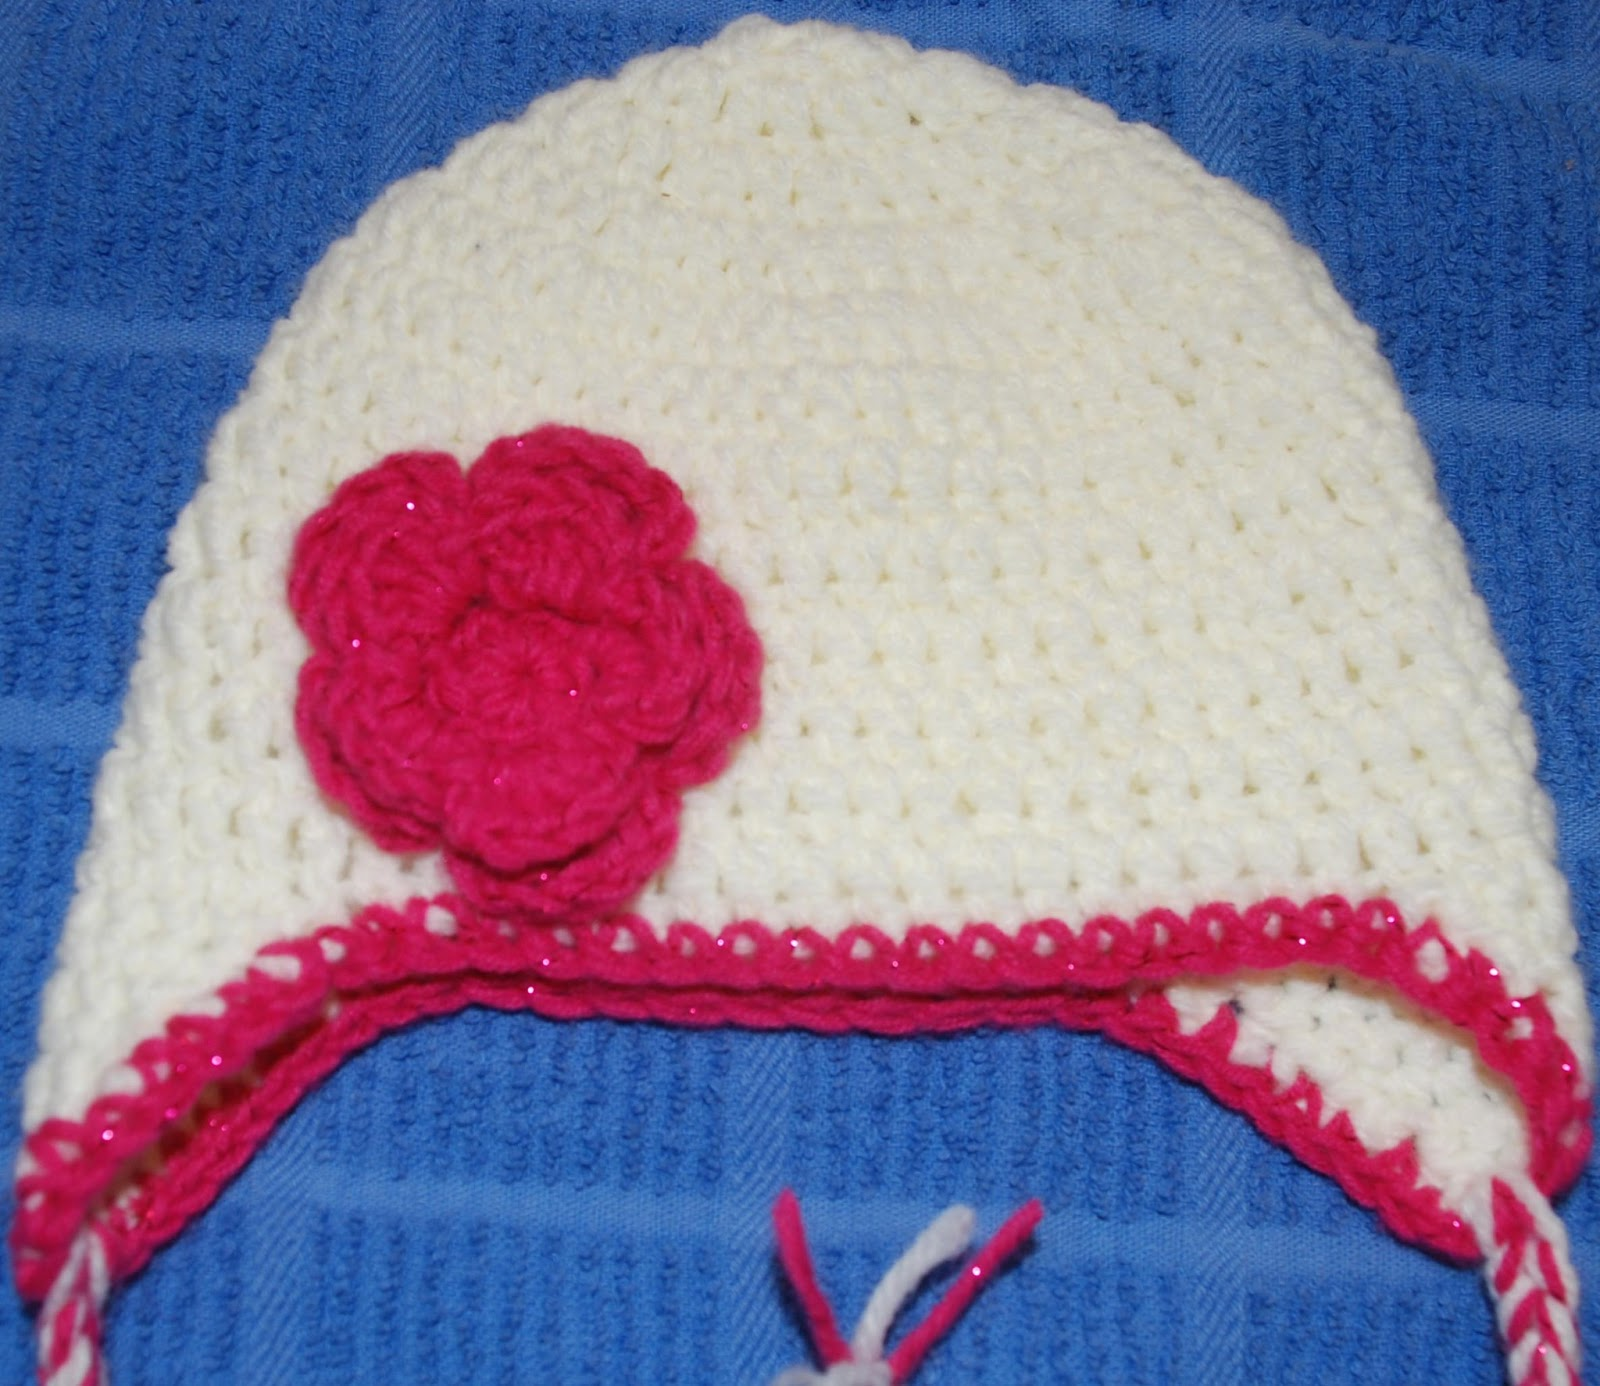 Free Crochet Patterns Baby Hats Easy : Amys Crochet Creative Creations: Crochet Baby Earflap hat